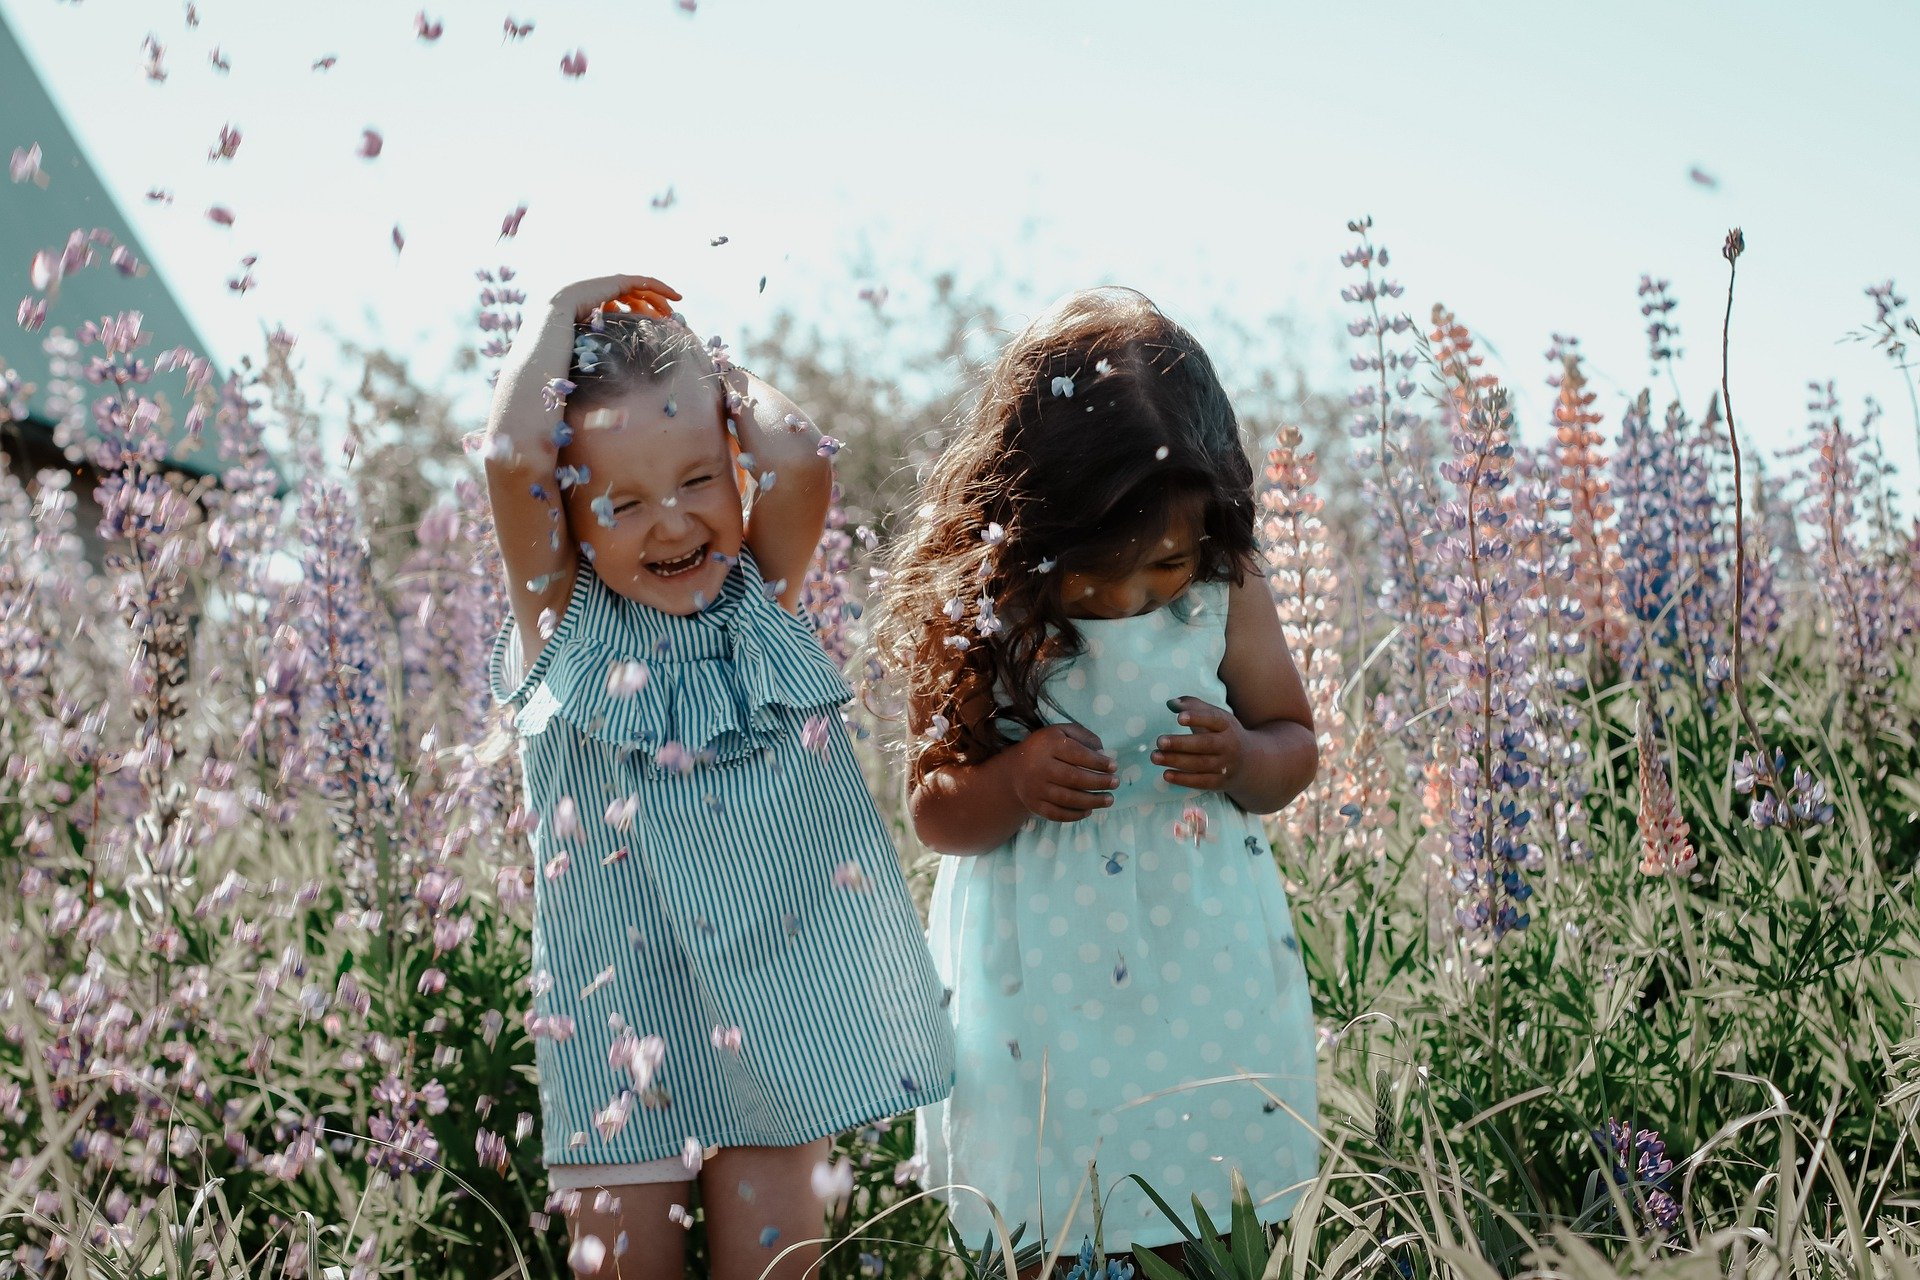 Kids laughing in the flowers